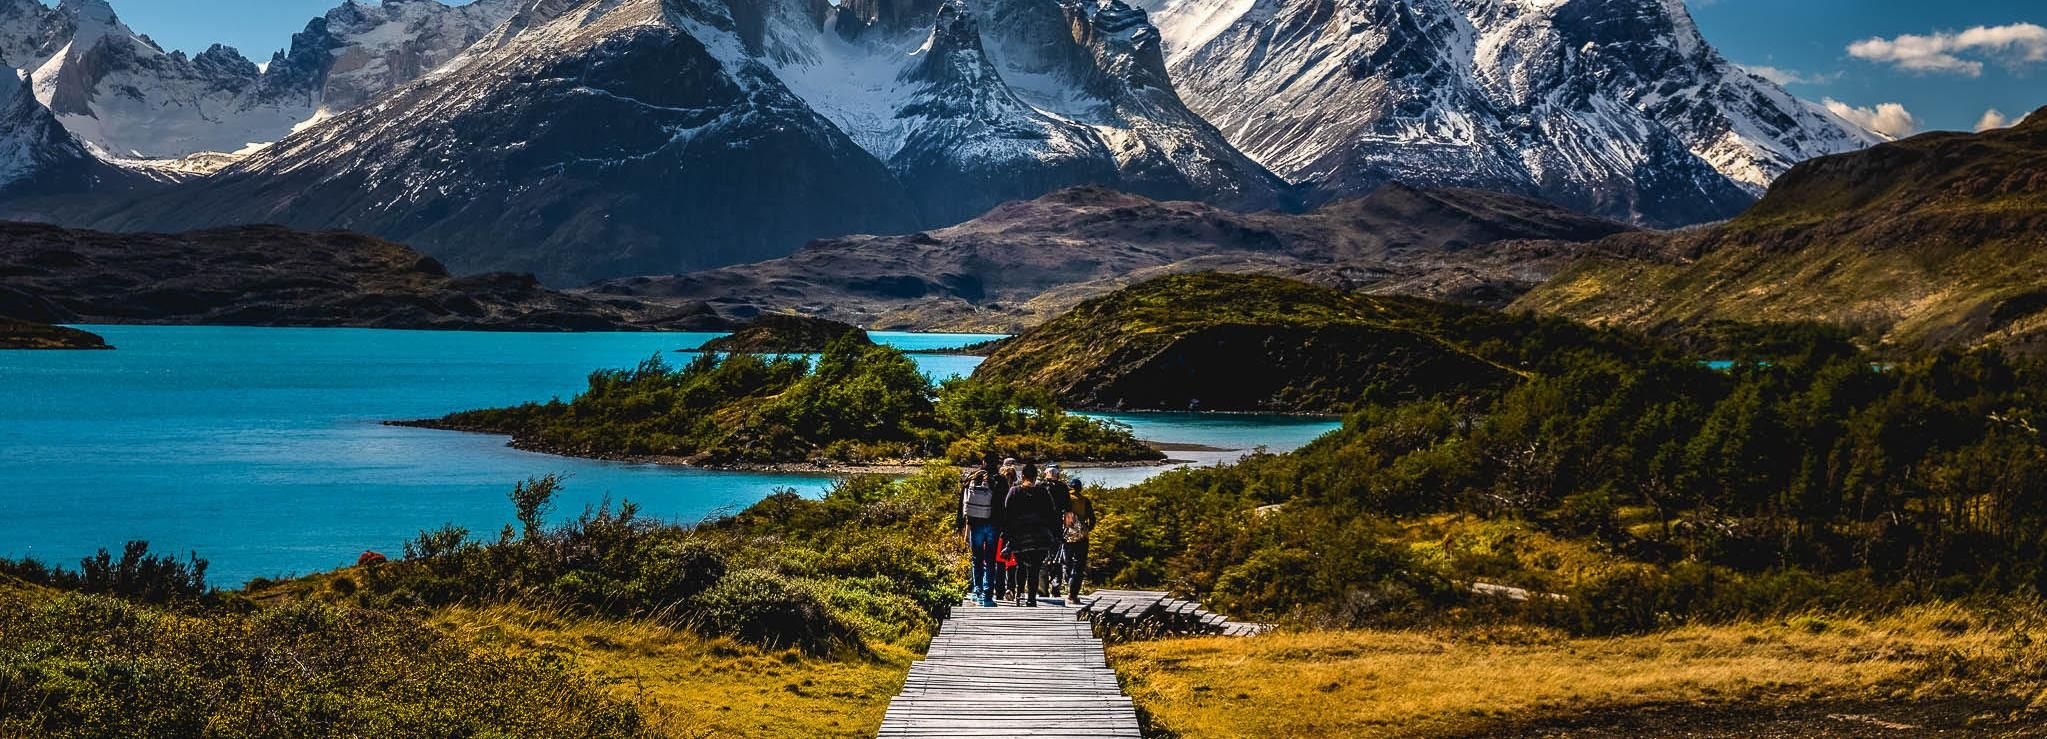 From El Calafate: Torres del Paine Full Day Tour